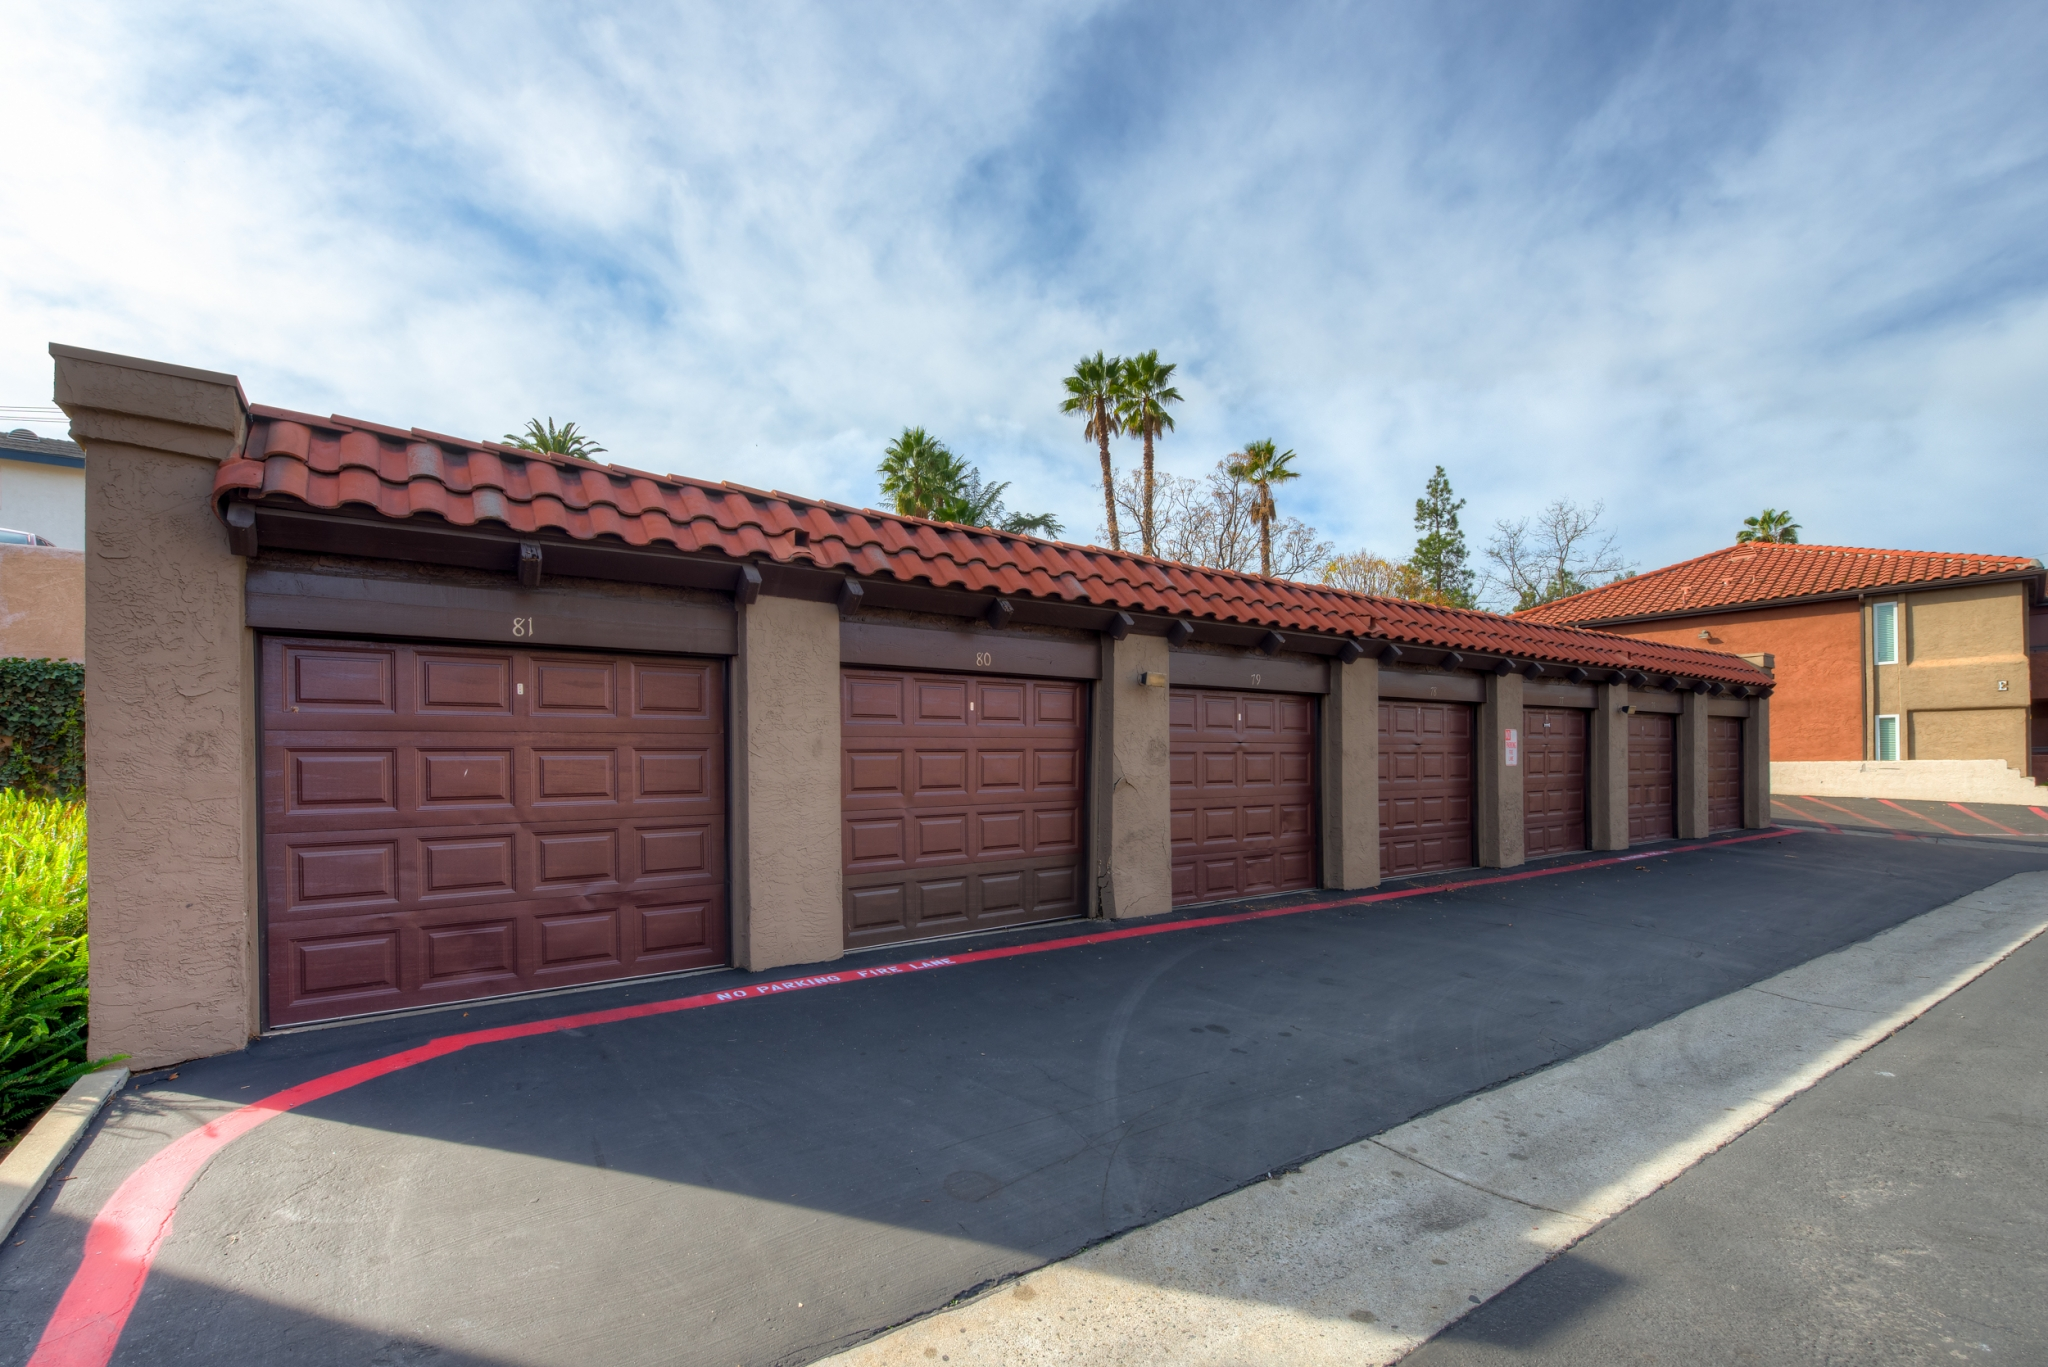 Image of Private Garage for Each Unit for Artesia